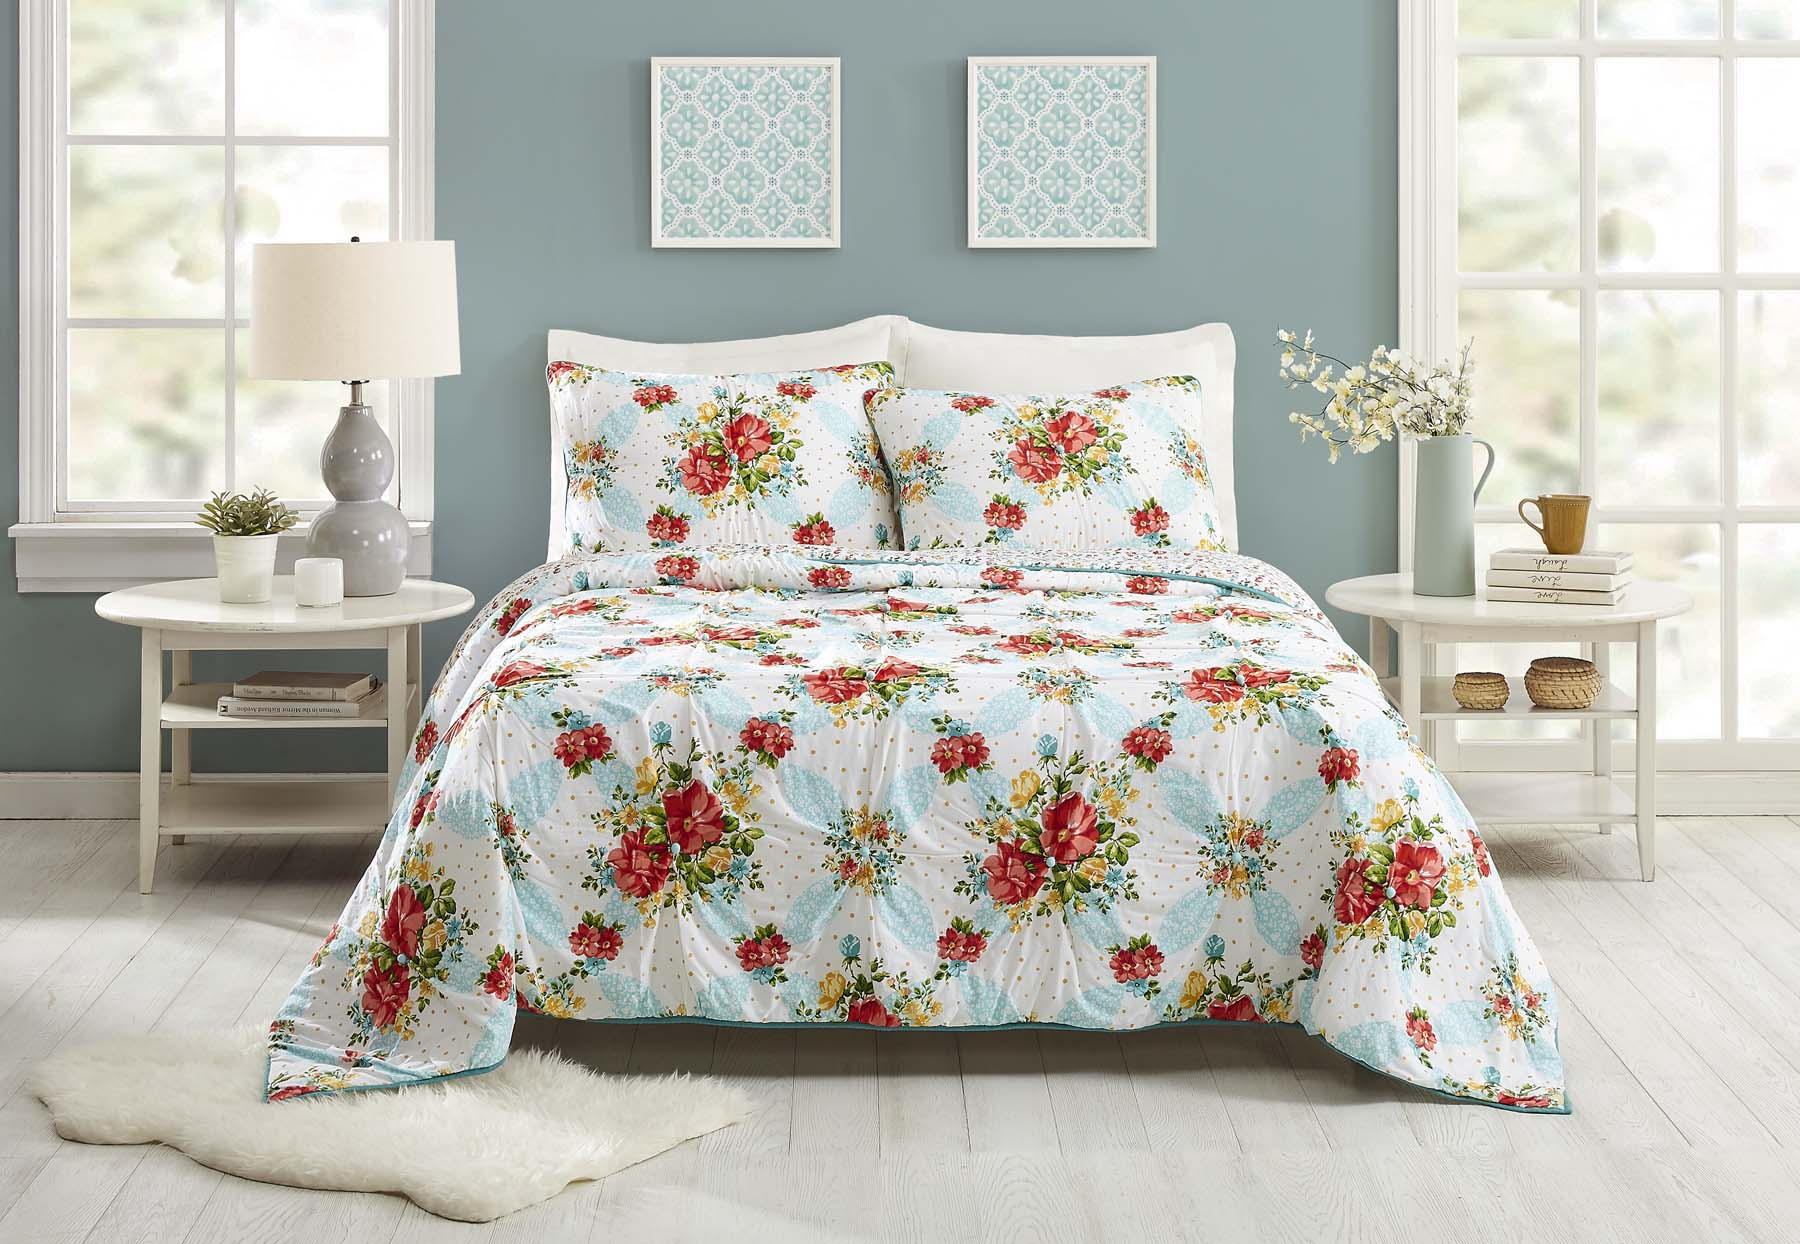 Pioneer Woman Bedding Collection